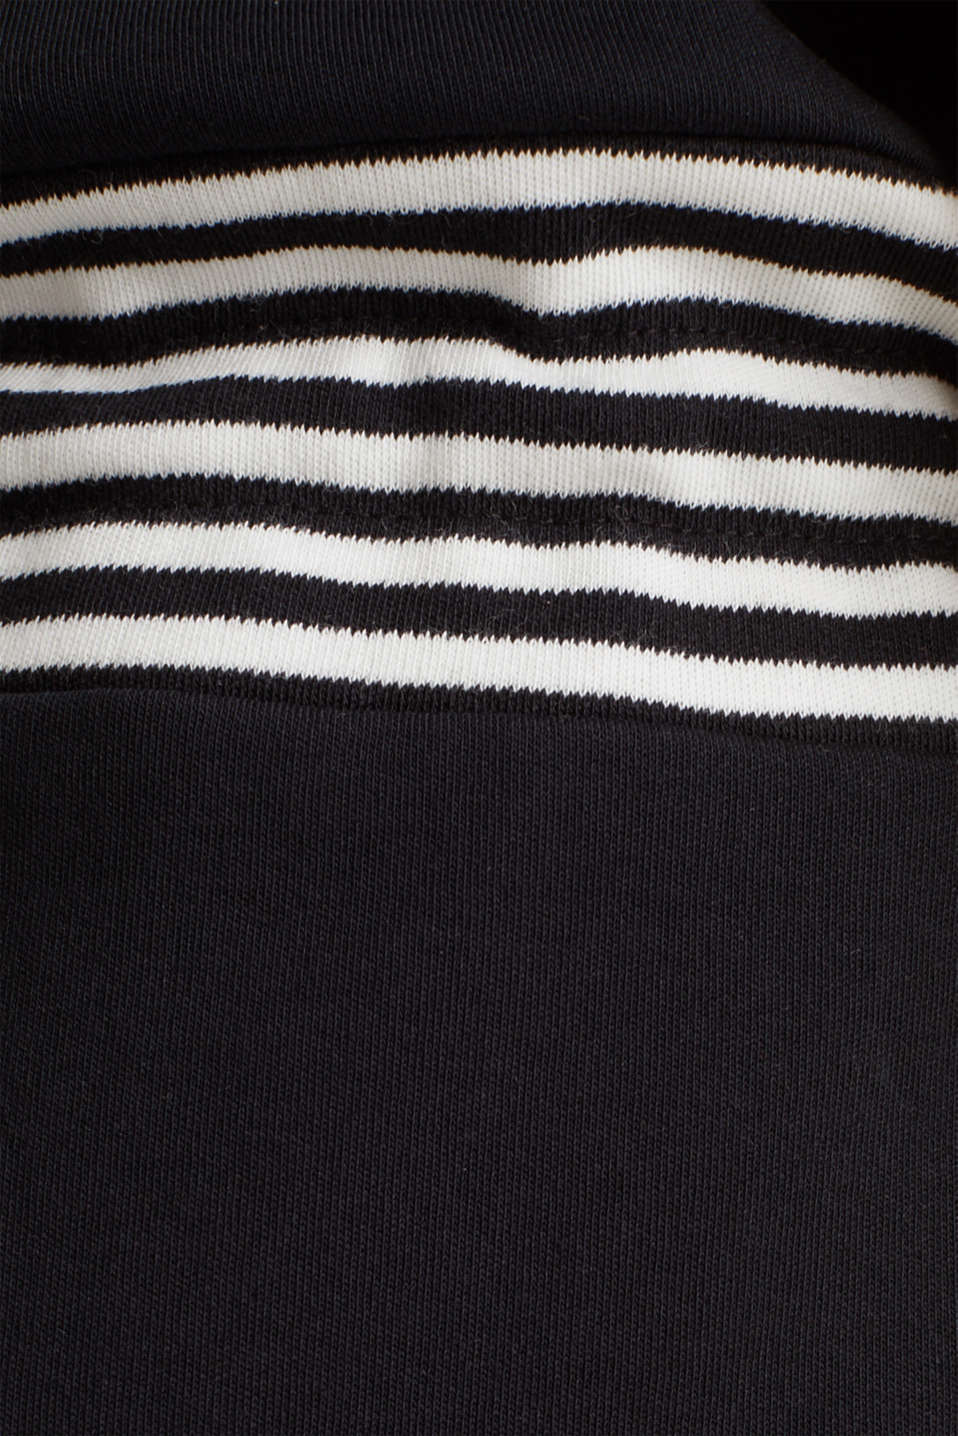 Jersey dress made of 100% cotton, BLACK, detail image number 4